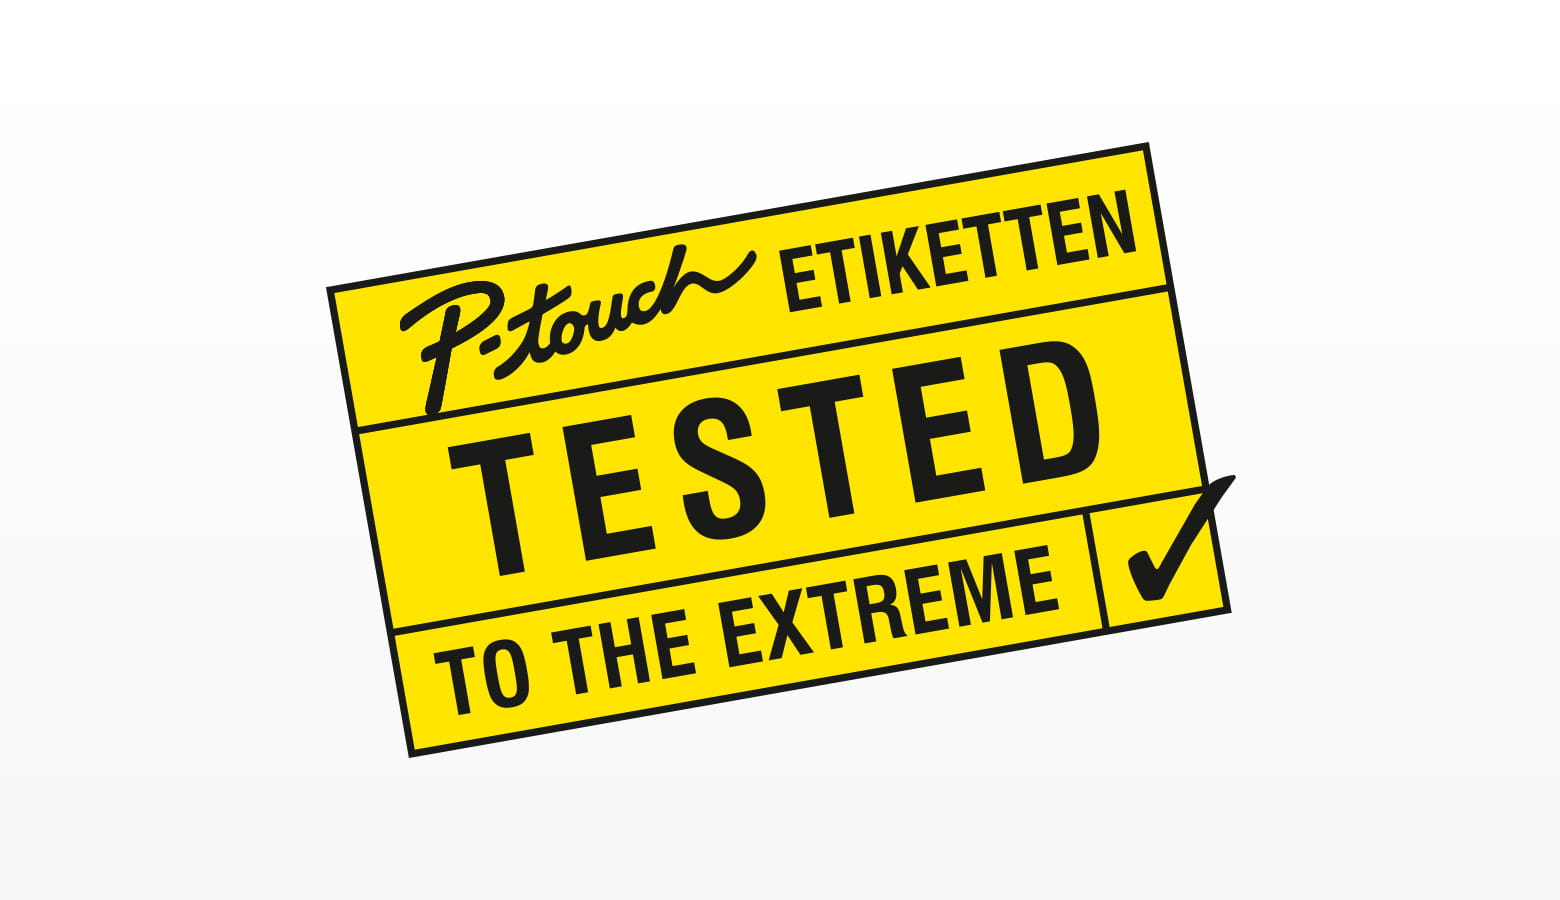 generic-banner-tested-extreme